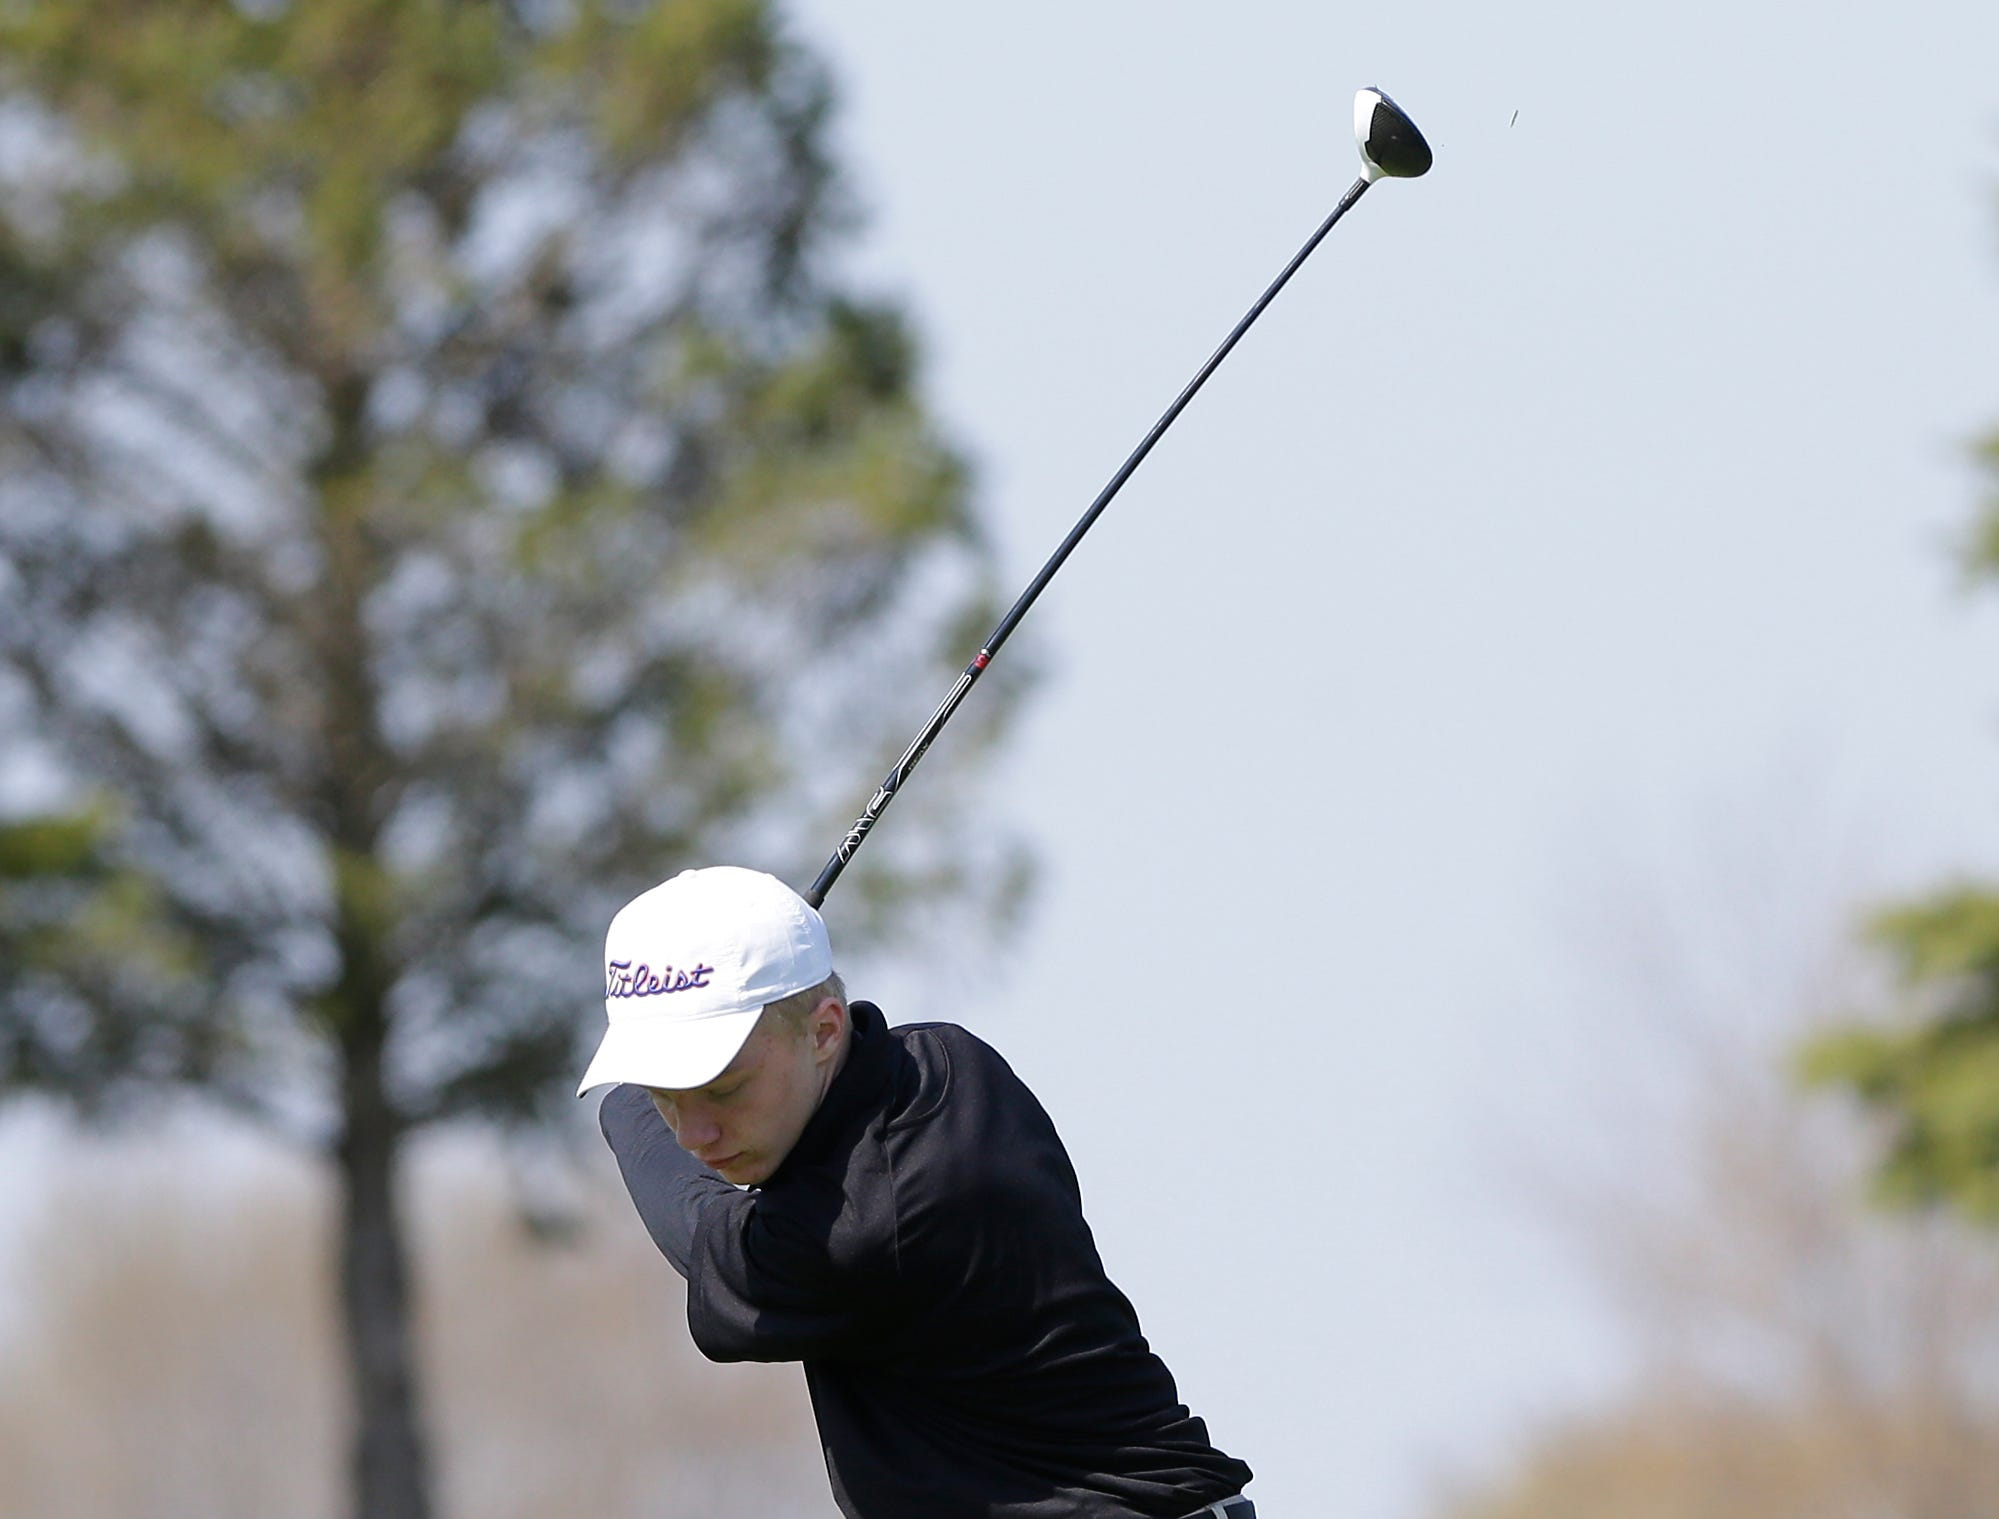 Jack Blair of Appleton West High School competes in the Fond du Lac High School golf invite Saturday, May 4, 2019 at Rolling Meadows Golf Course in Fond du Lac, Wis. Doug Raflik/USA TODAY NETWORK-Wisconsin